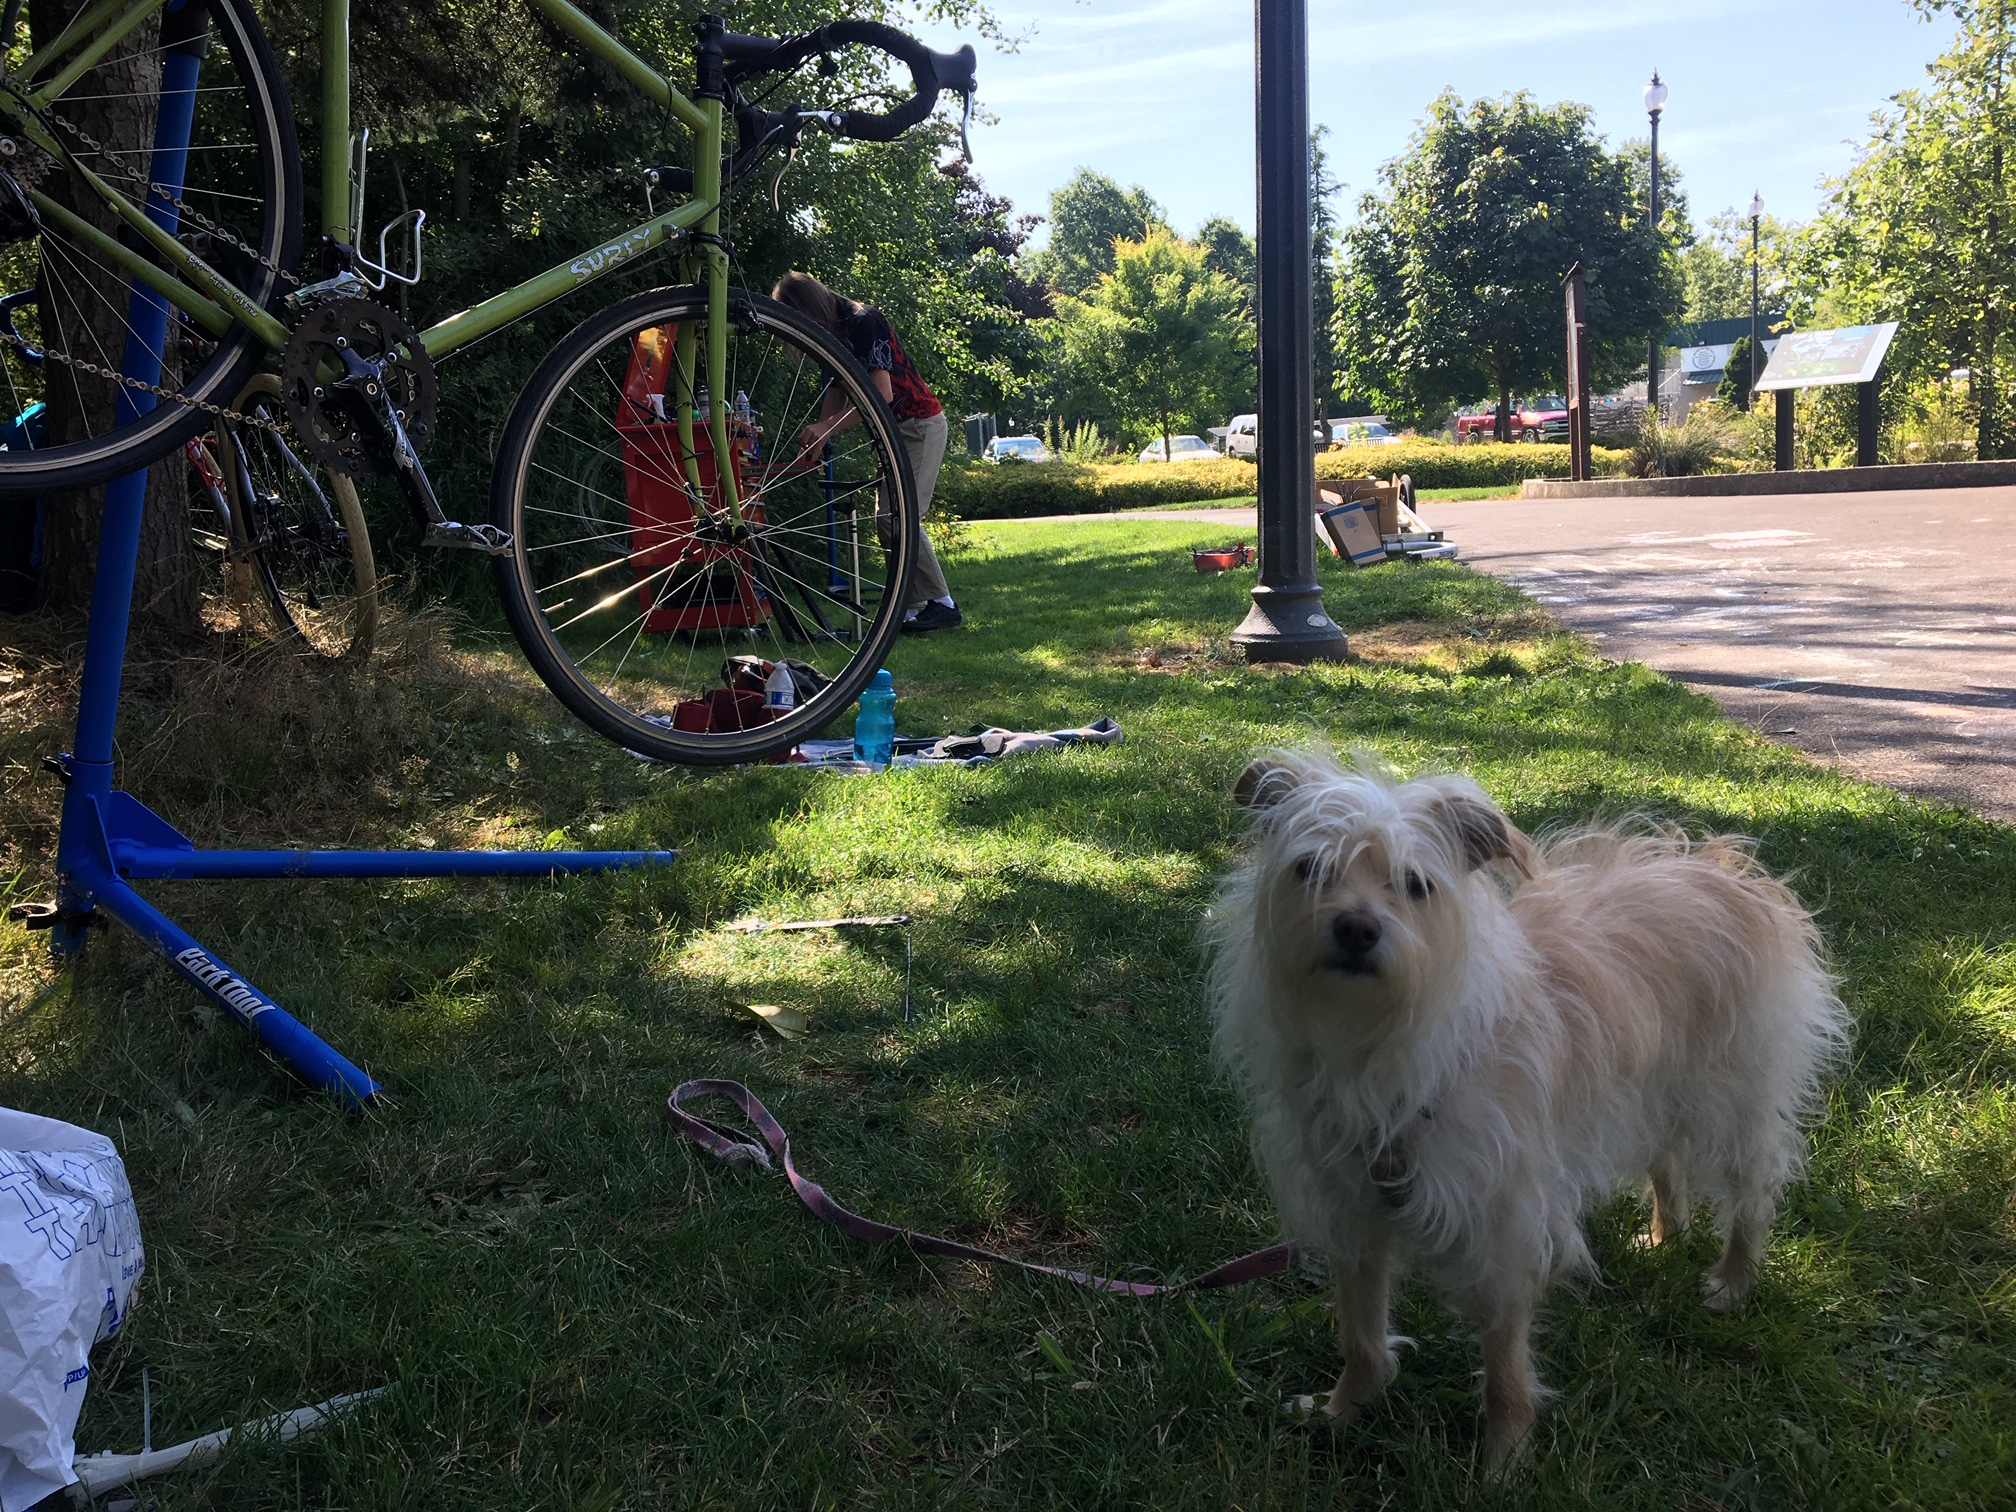 Our lead dog mechanic Angel. her human brandon came to us interested in learning how set up a mobile bike repair shop. he worked with us all summer to see what tools would be needed, what kind of repairs would be encountered, and what strategies would be required to fix bikes in the field.